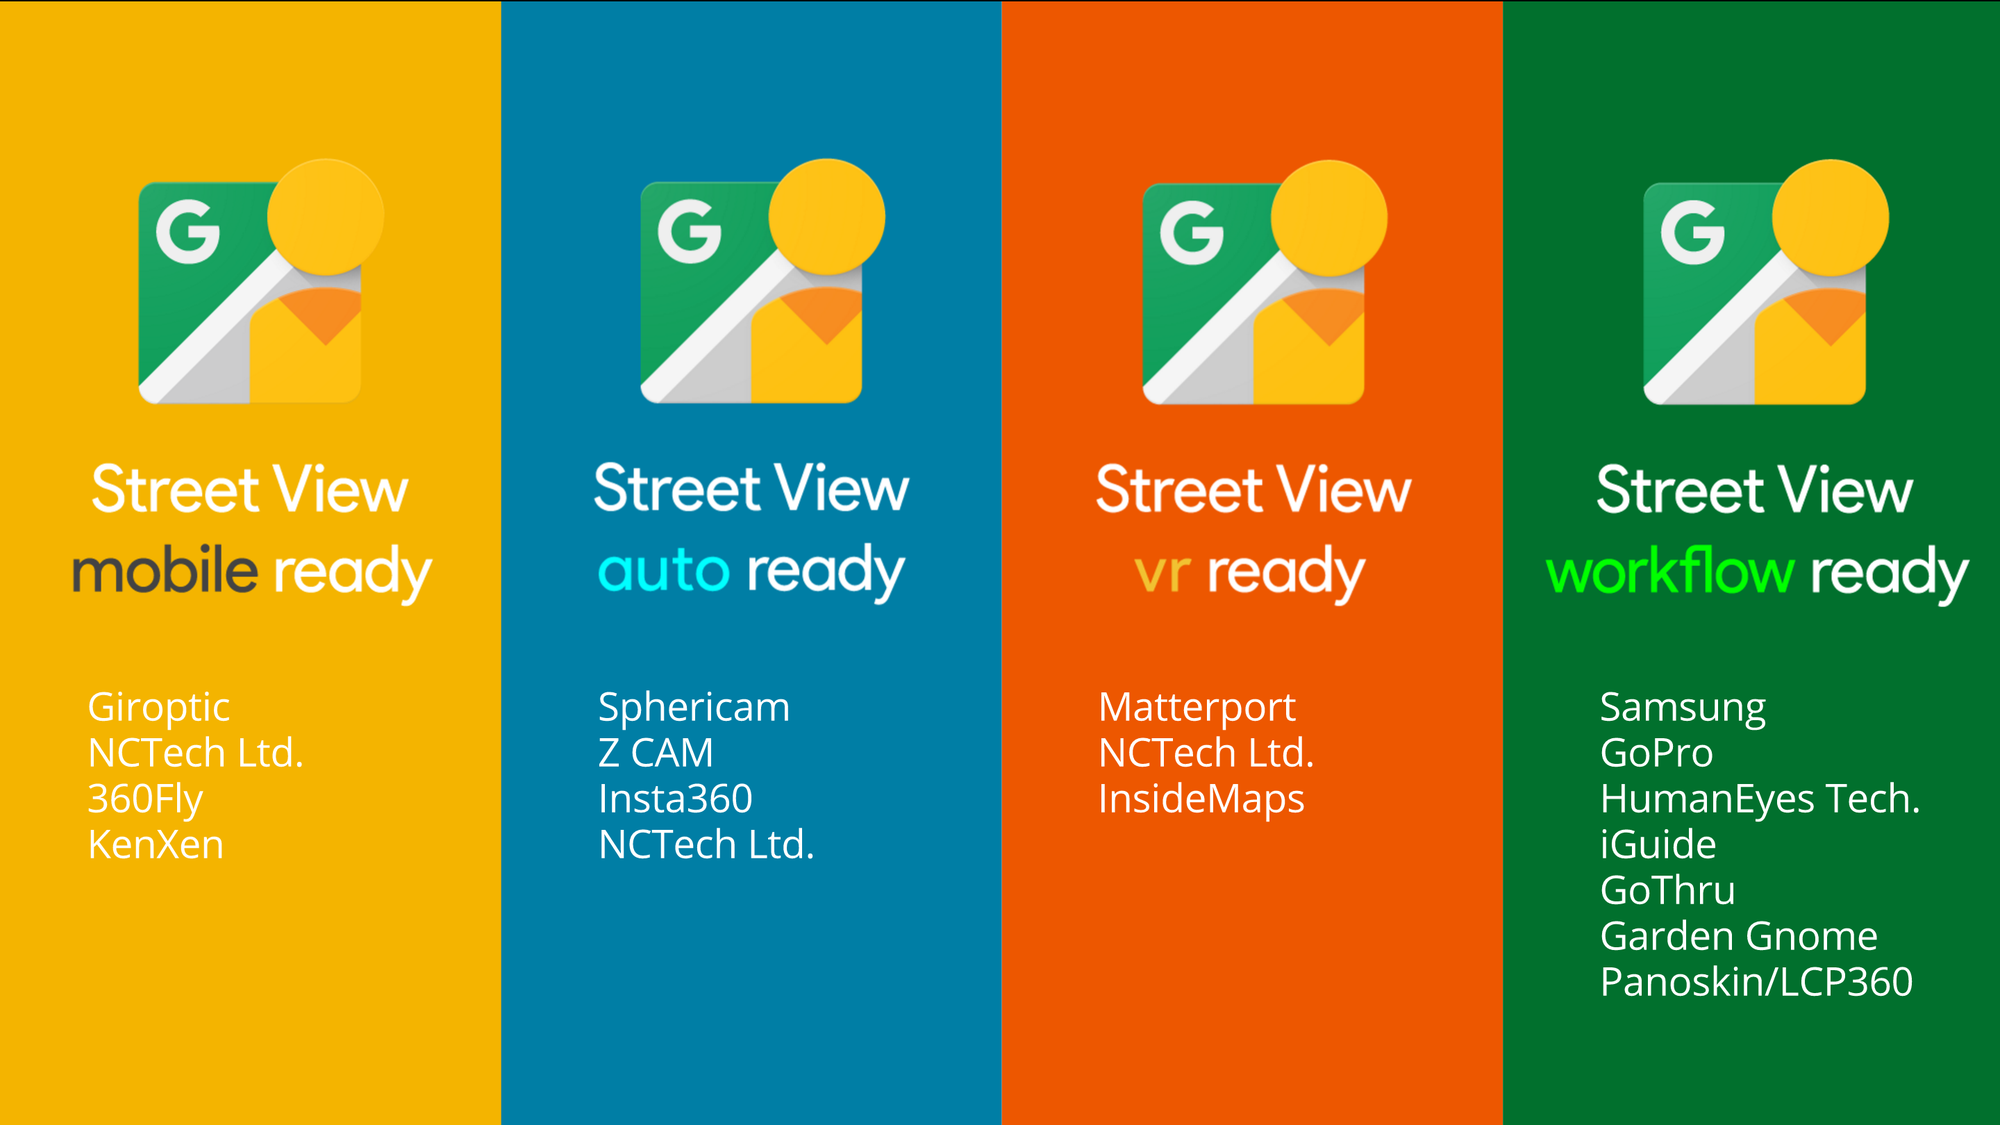 street_view_ready_partners_width-2000.png